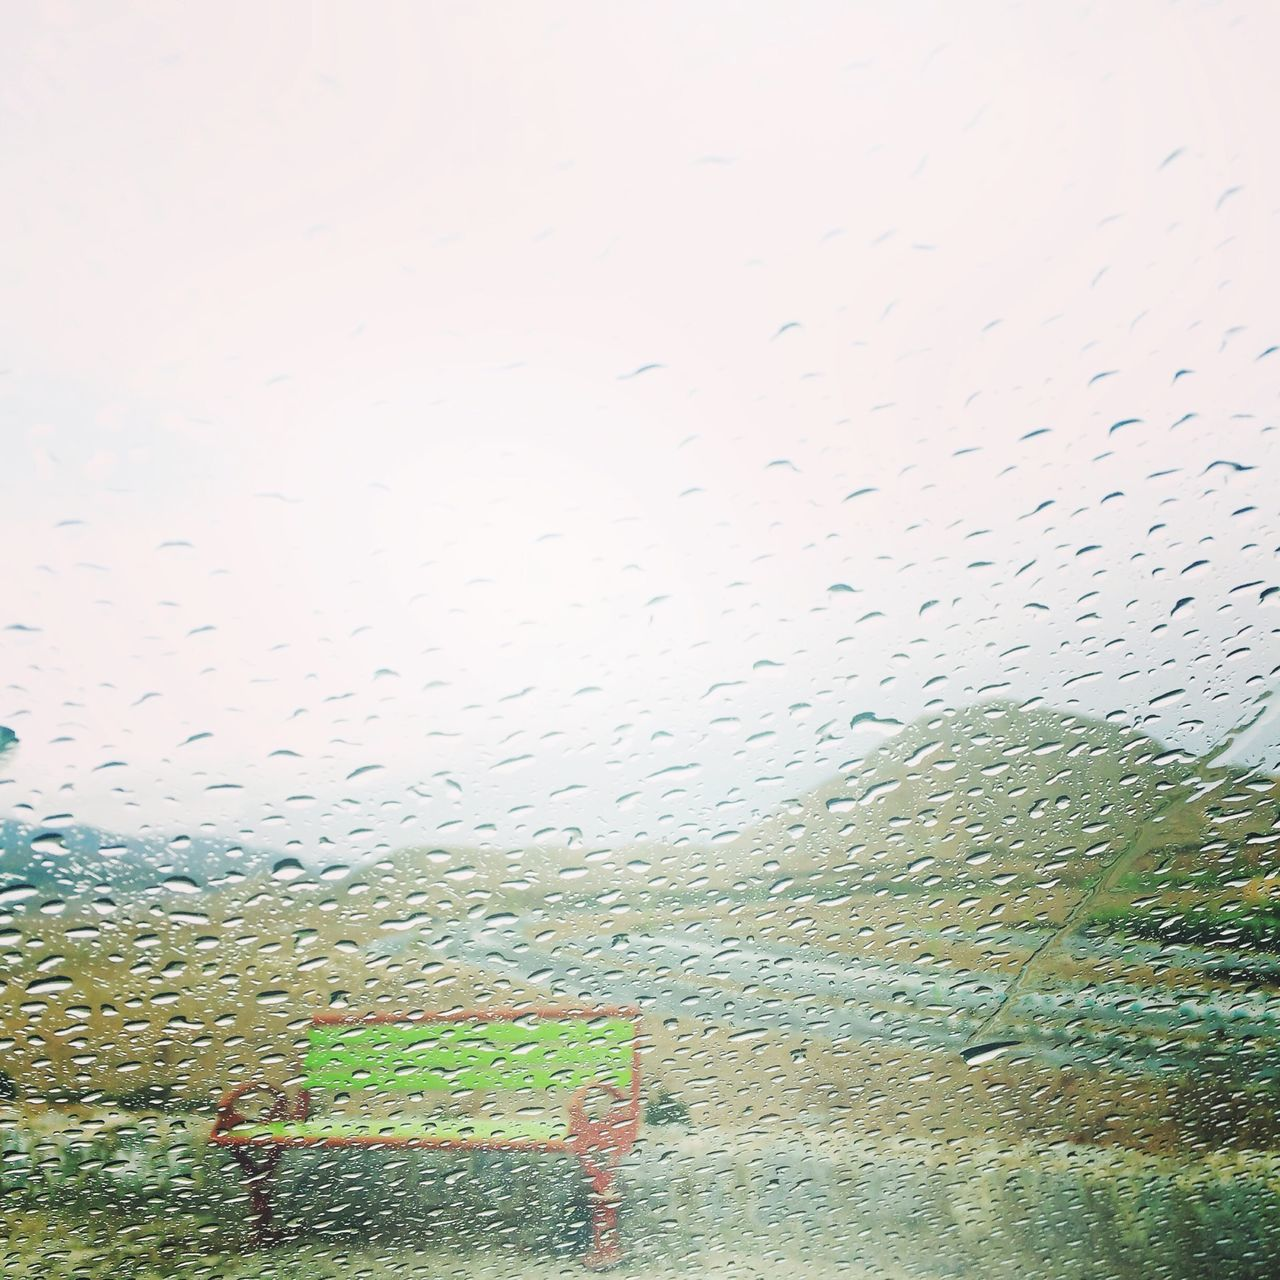 wet, rain, drop, water, window, rainy season, raindrop, glass - material, weather, car, no people, sky, looking through window, car interior, land vehicle, architecture, day, indoors, nature, city, close-up